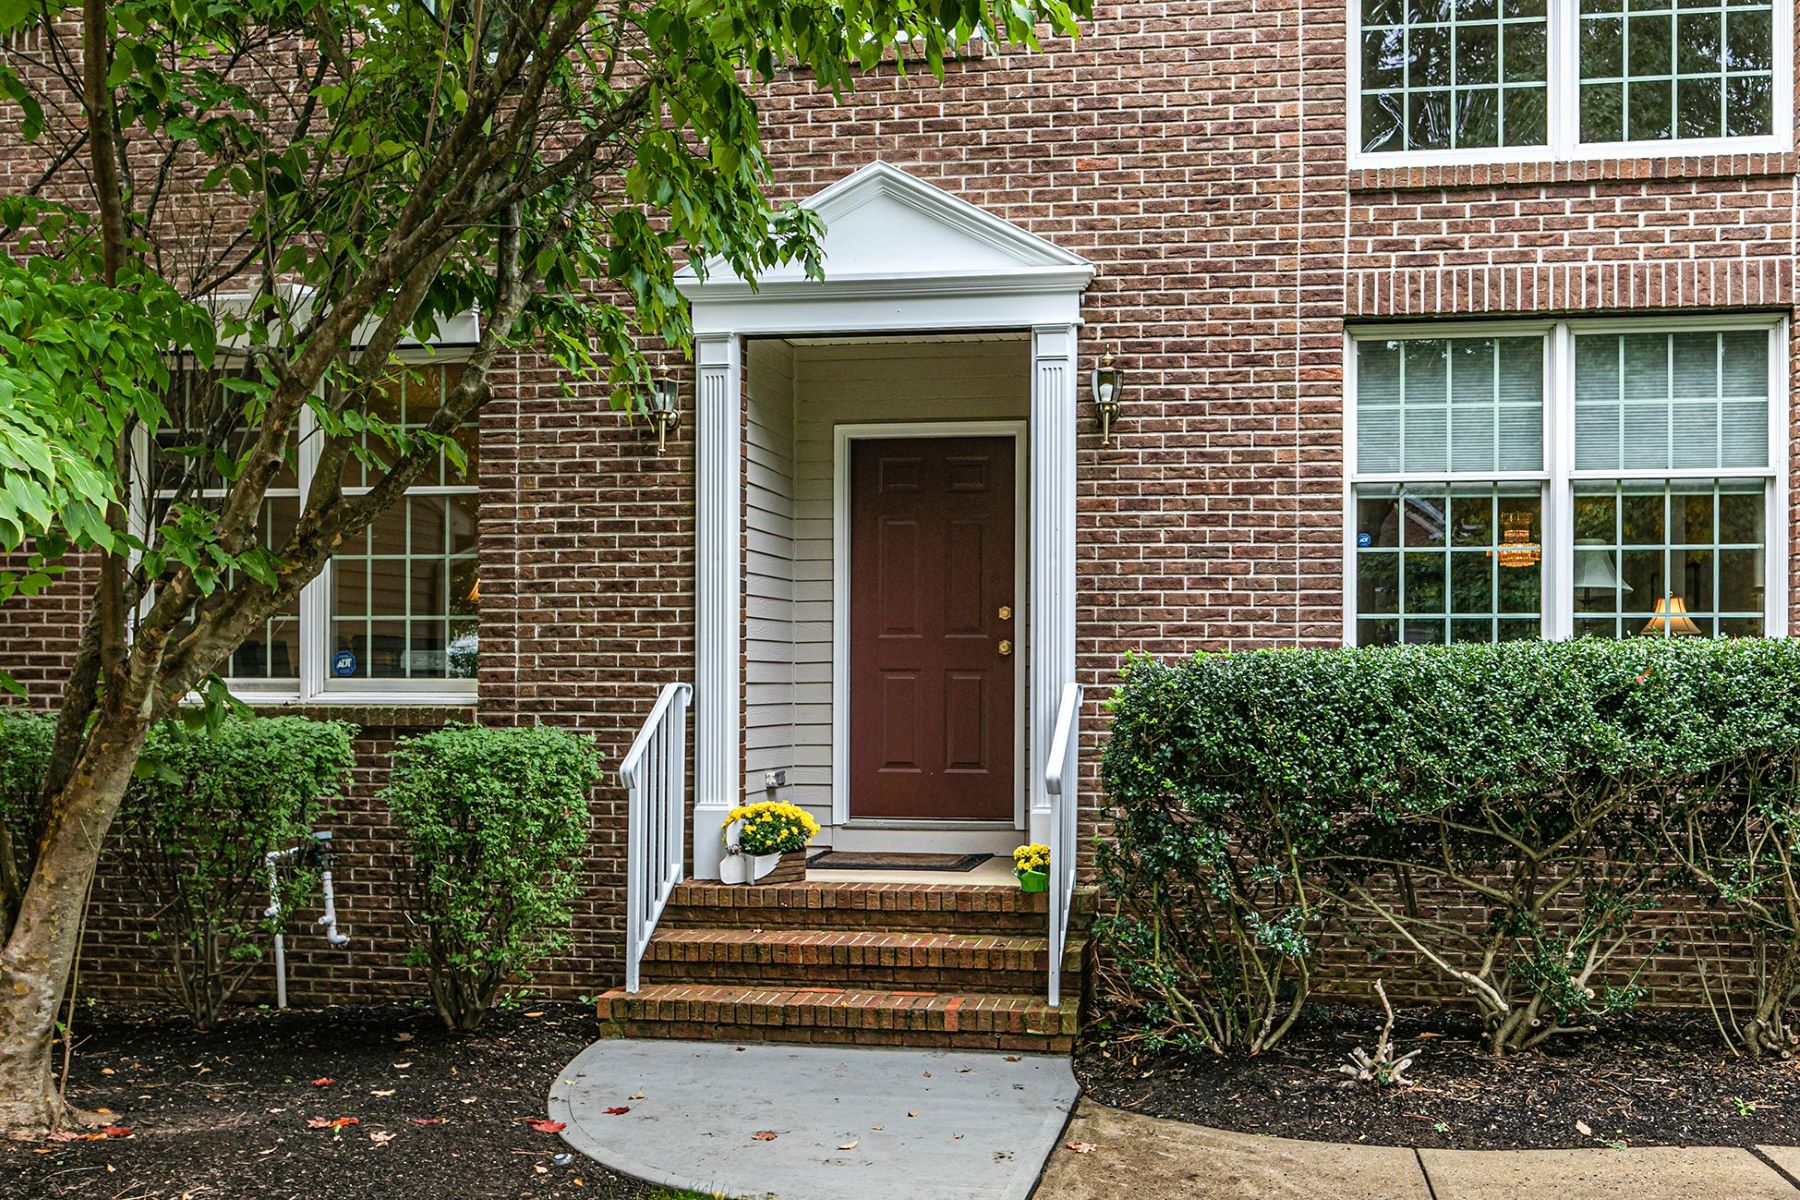 Single Family Homes for Sale at Tranquil and Tree-Lined, Moments from Downtown 6 Stonewall Circle, Princeton, New Jersey 08540 United States